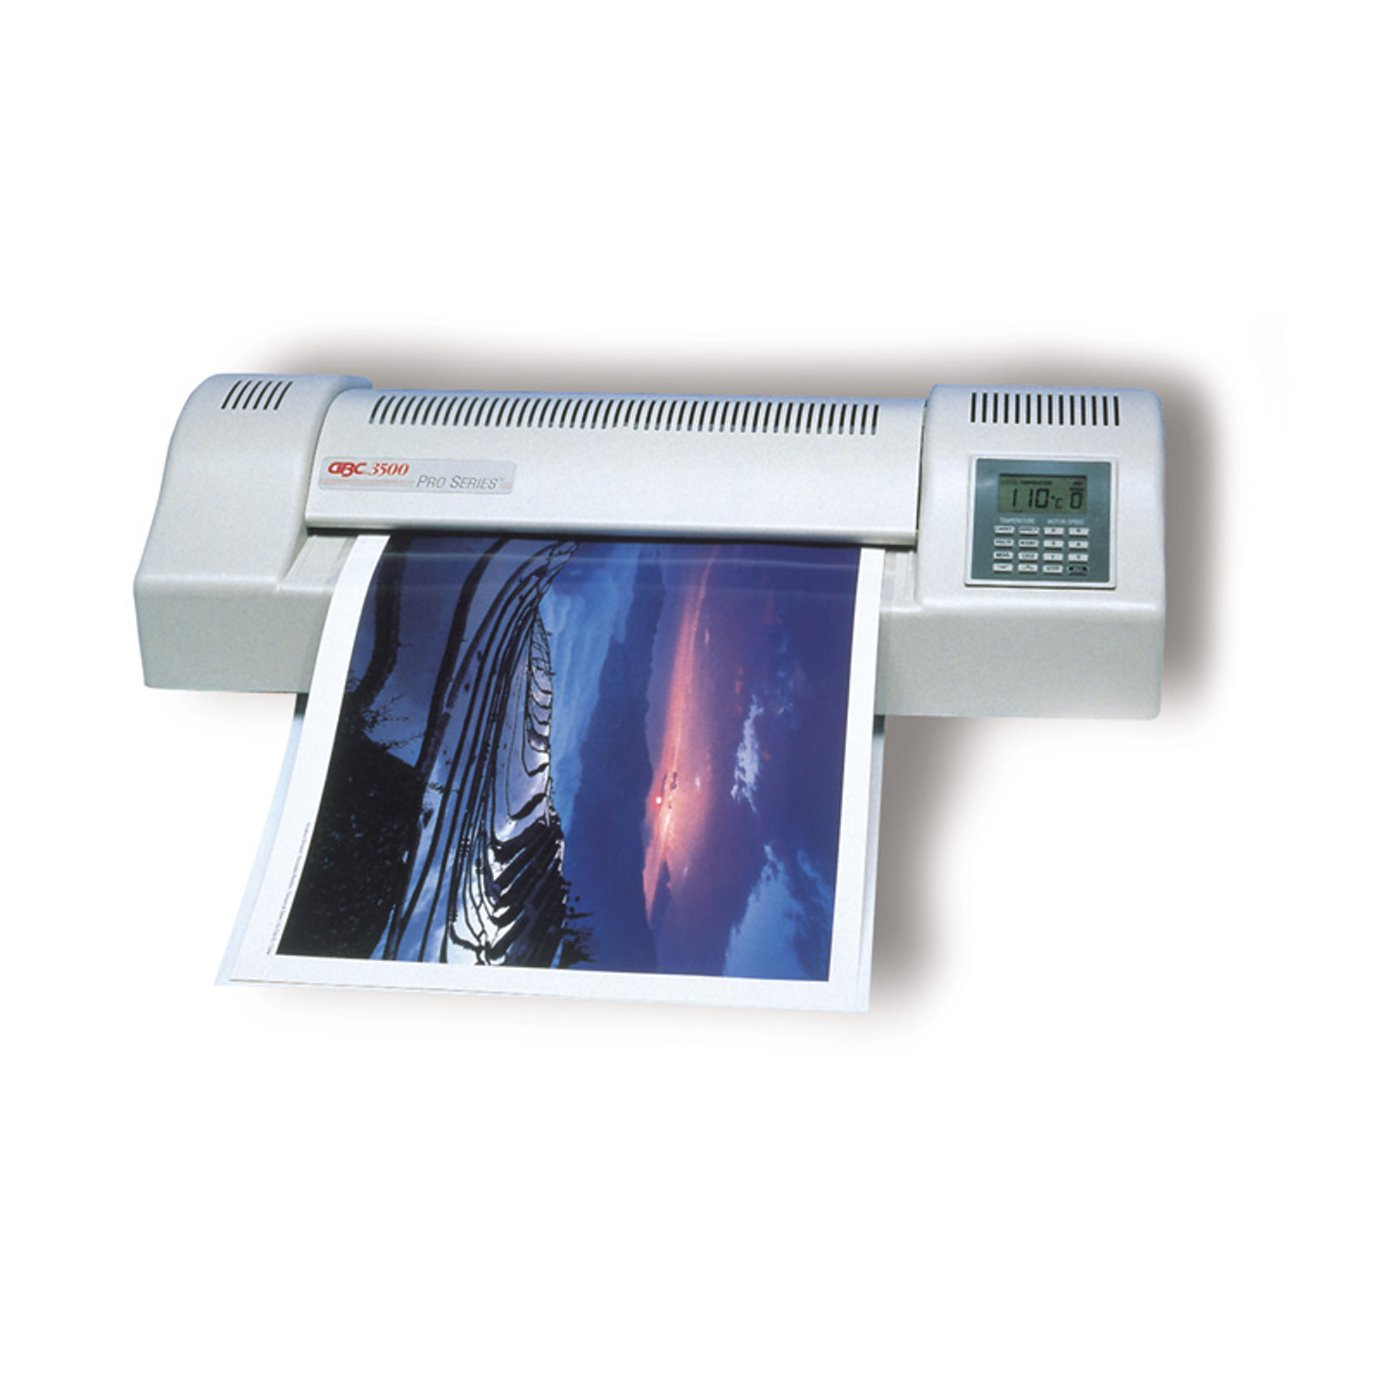 Ex-Demo GBC 3500 Pro A3 Photo Pouch Laminator